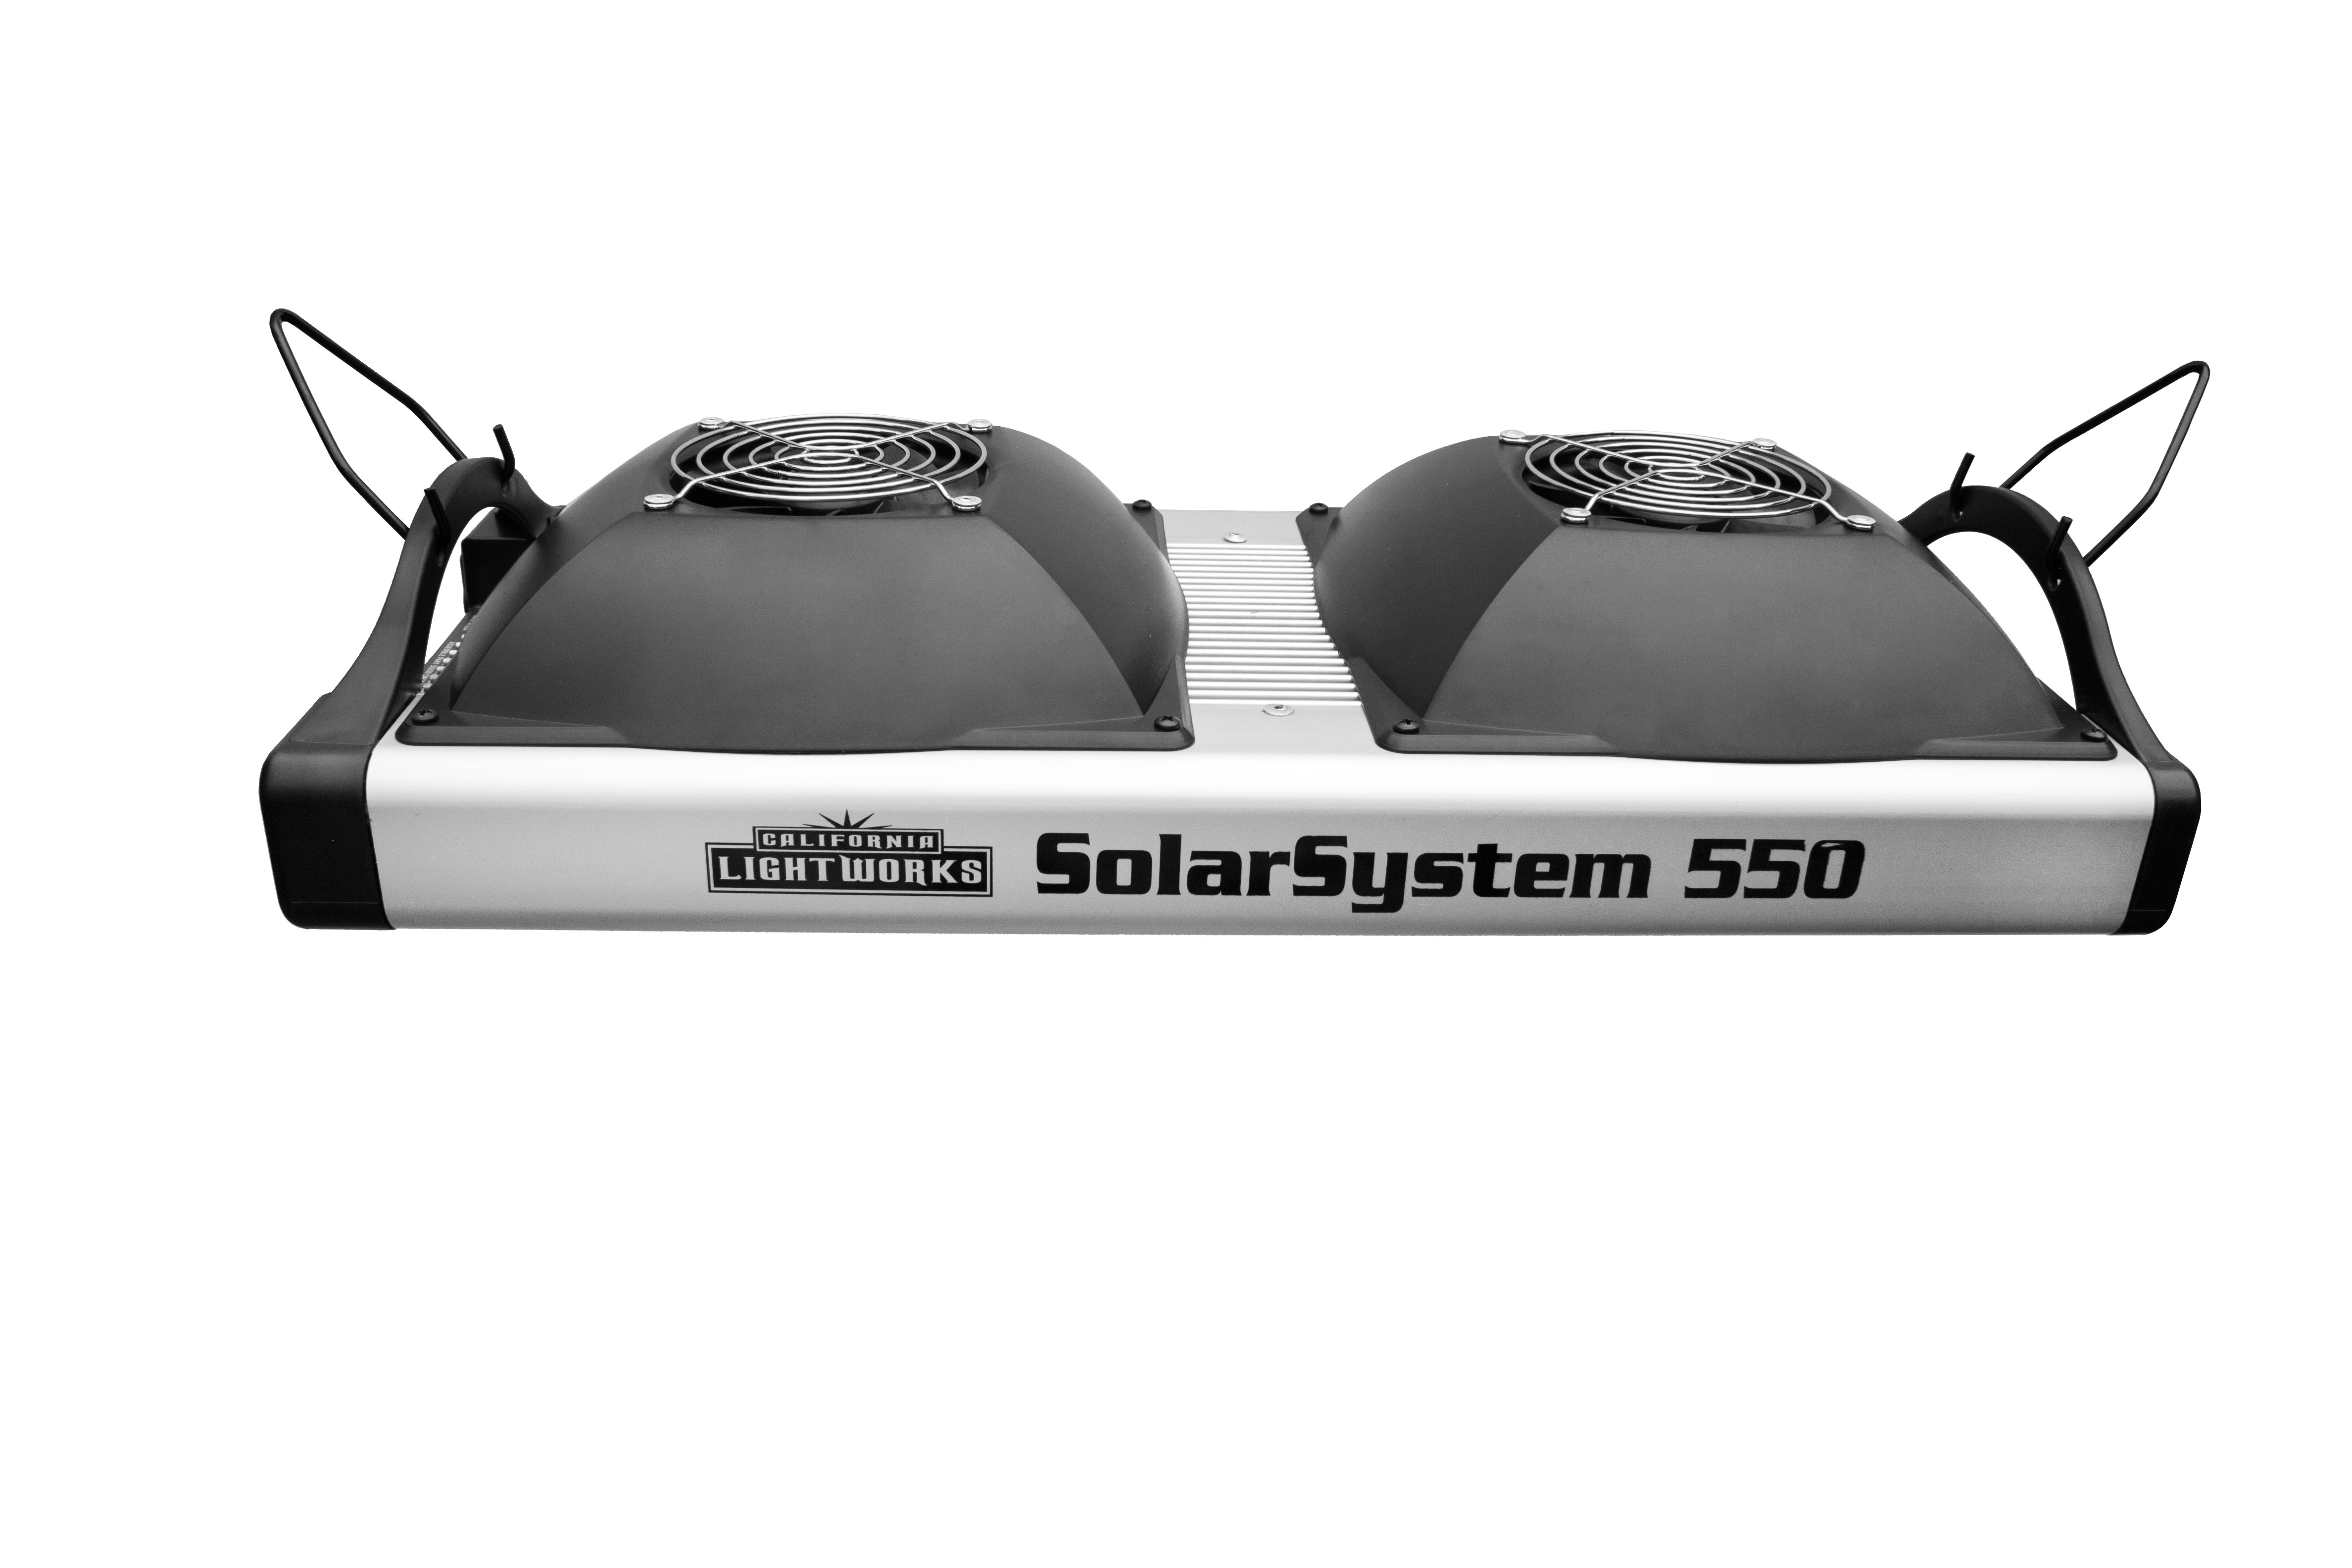 Solar System 550 400w Programmable Led Grow Light Sold By Crazy